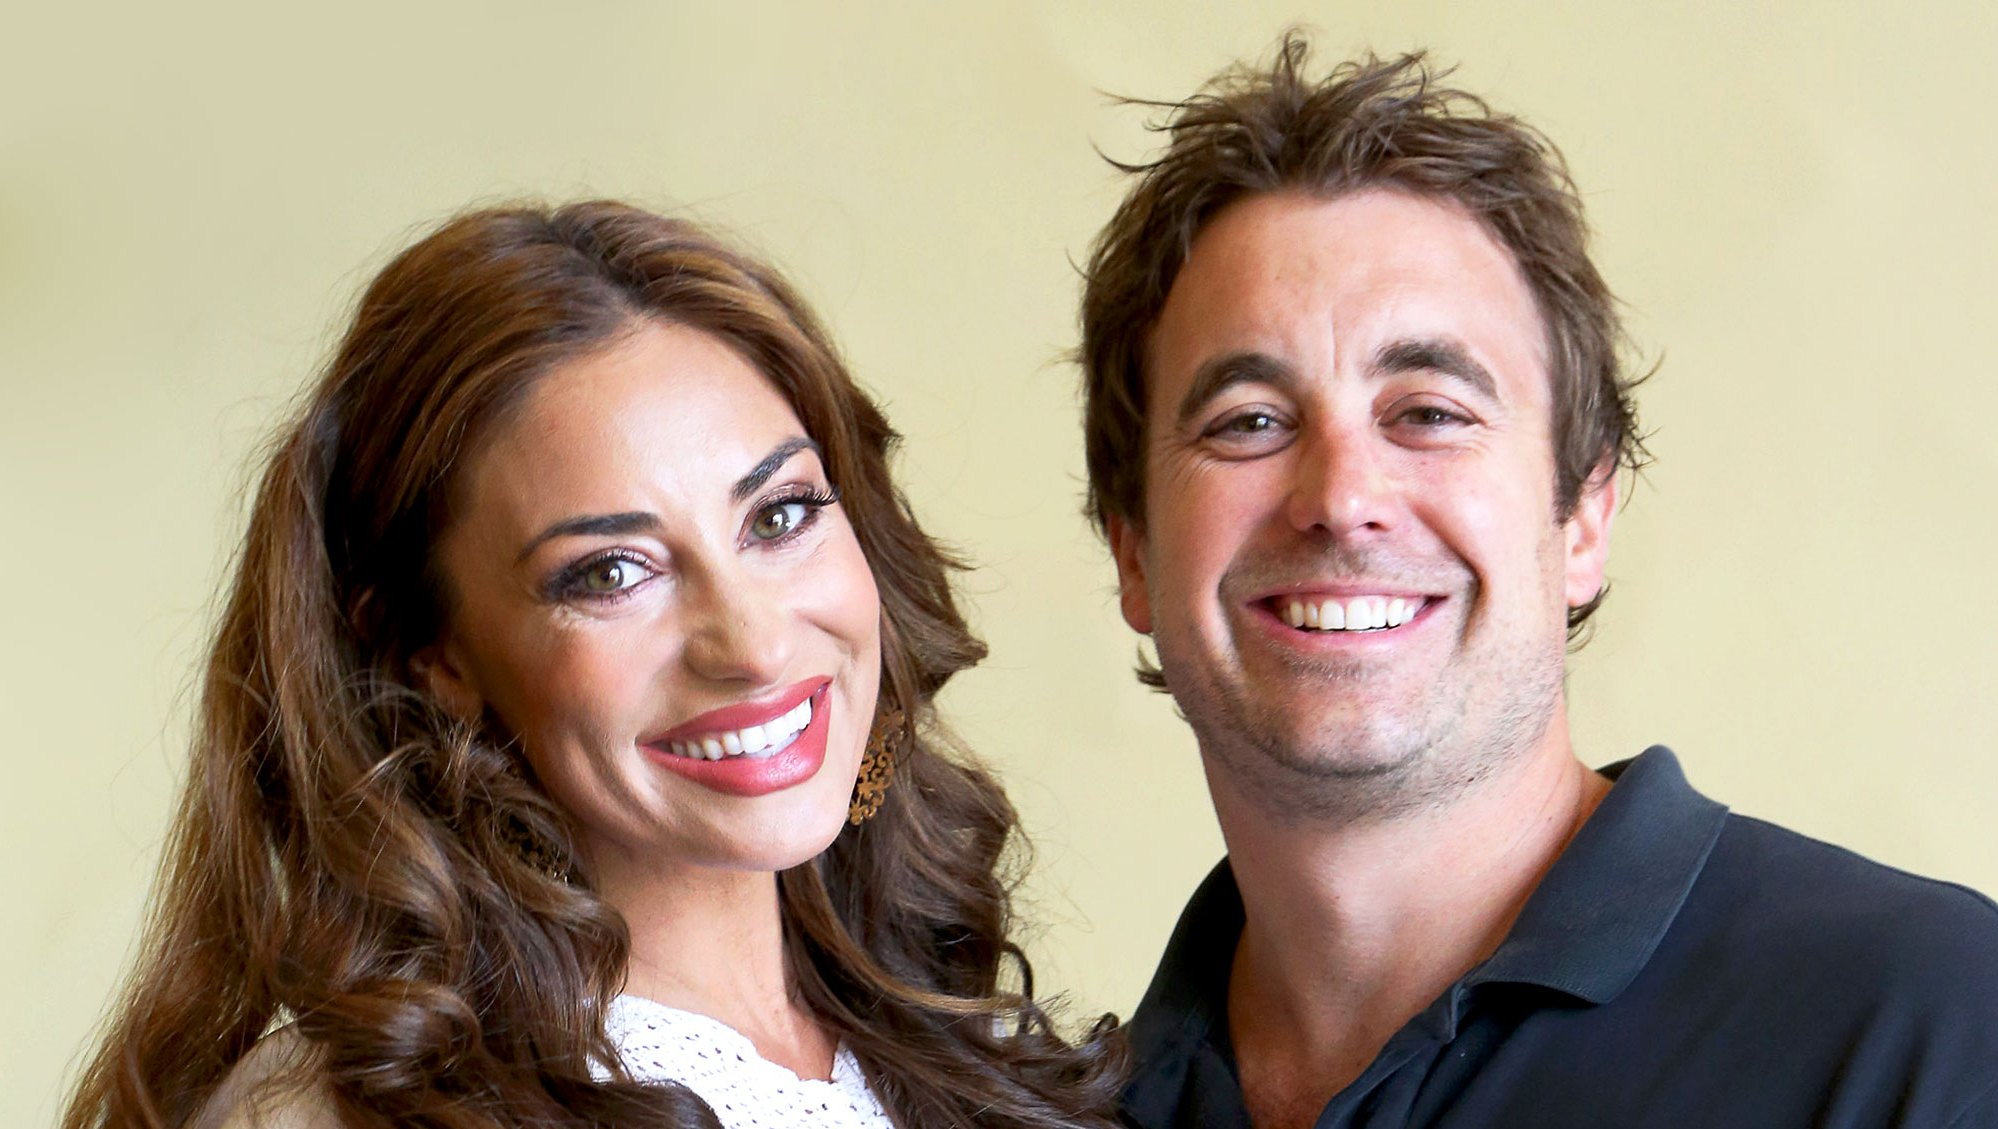 Real Housewives of Orange County Star Lizzie Rovsek Files for Divorce From Husband Christian Rovsek